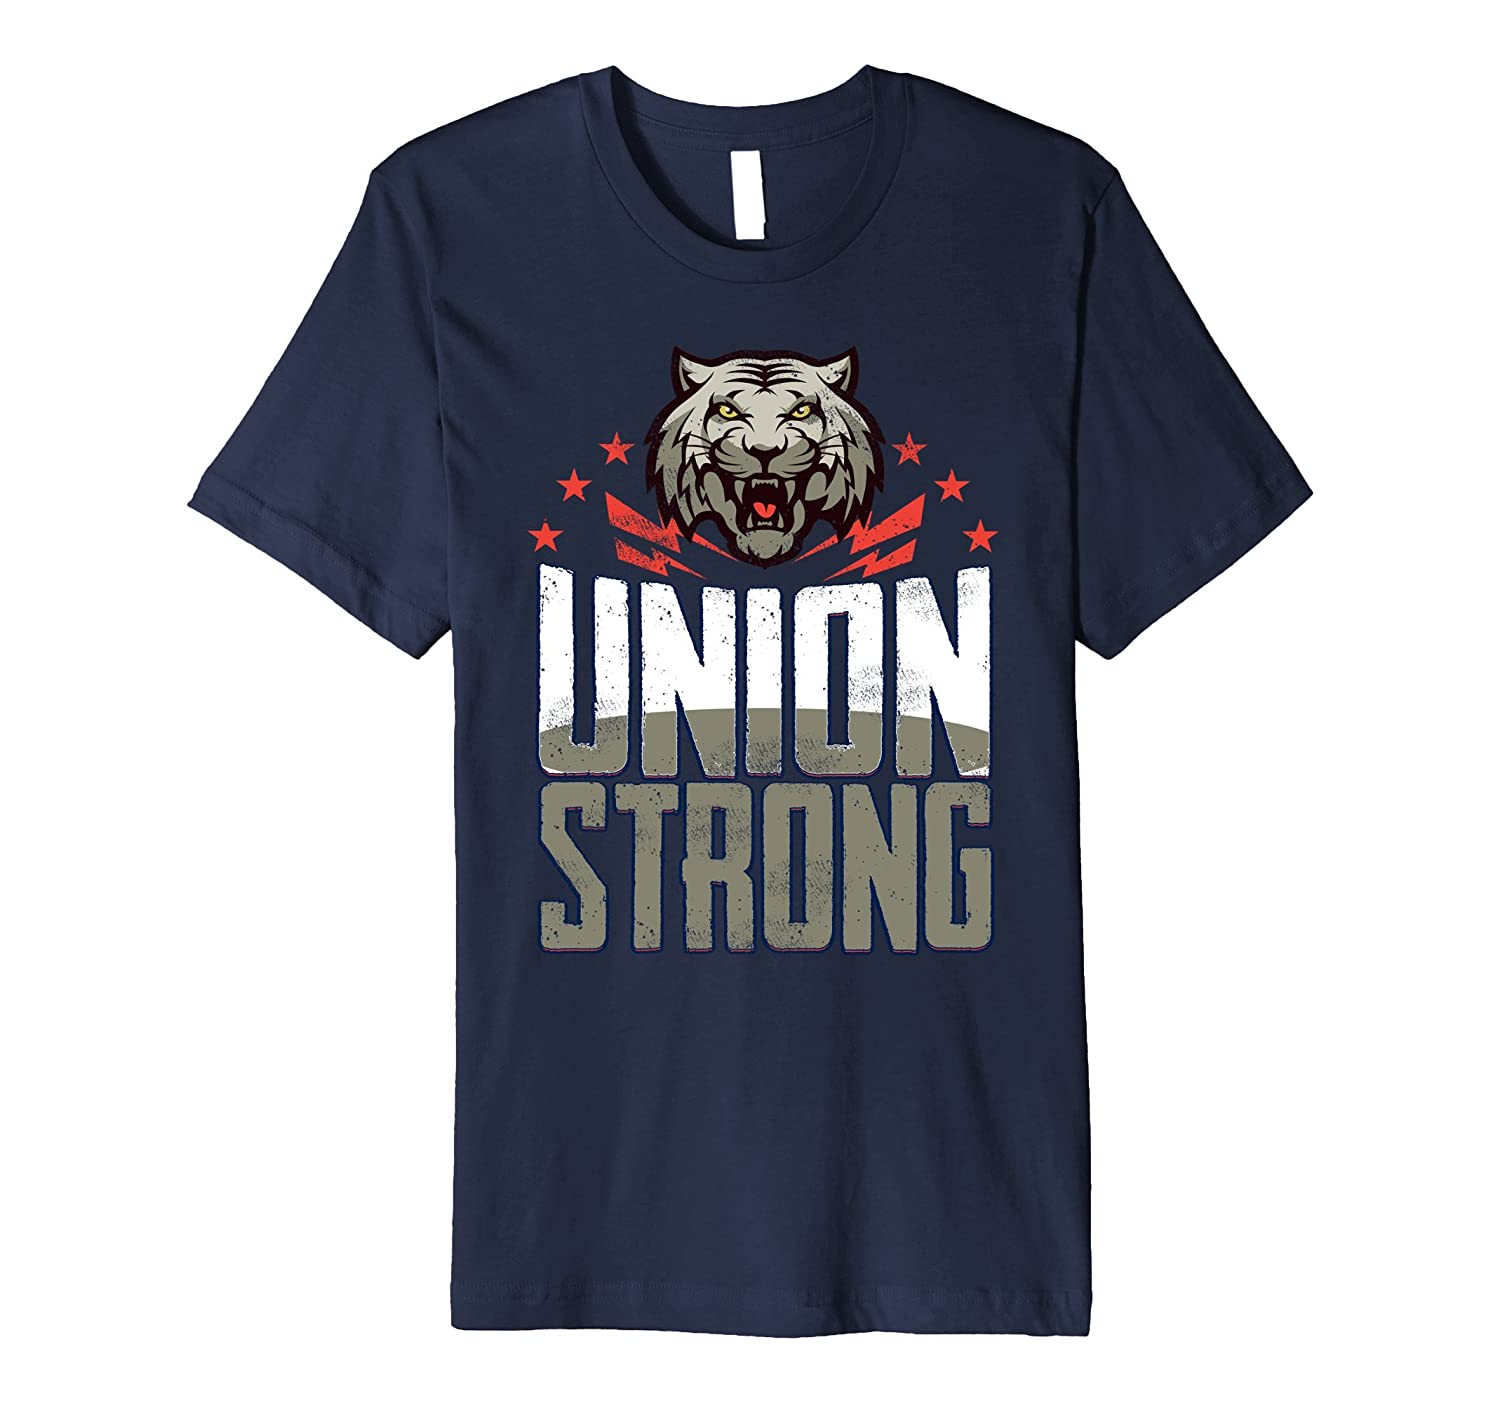 Union Strong Tee shirts Short sleeves shirt